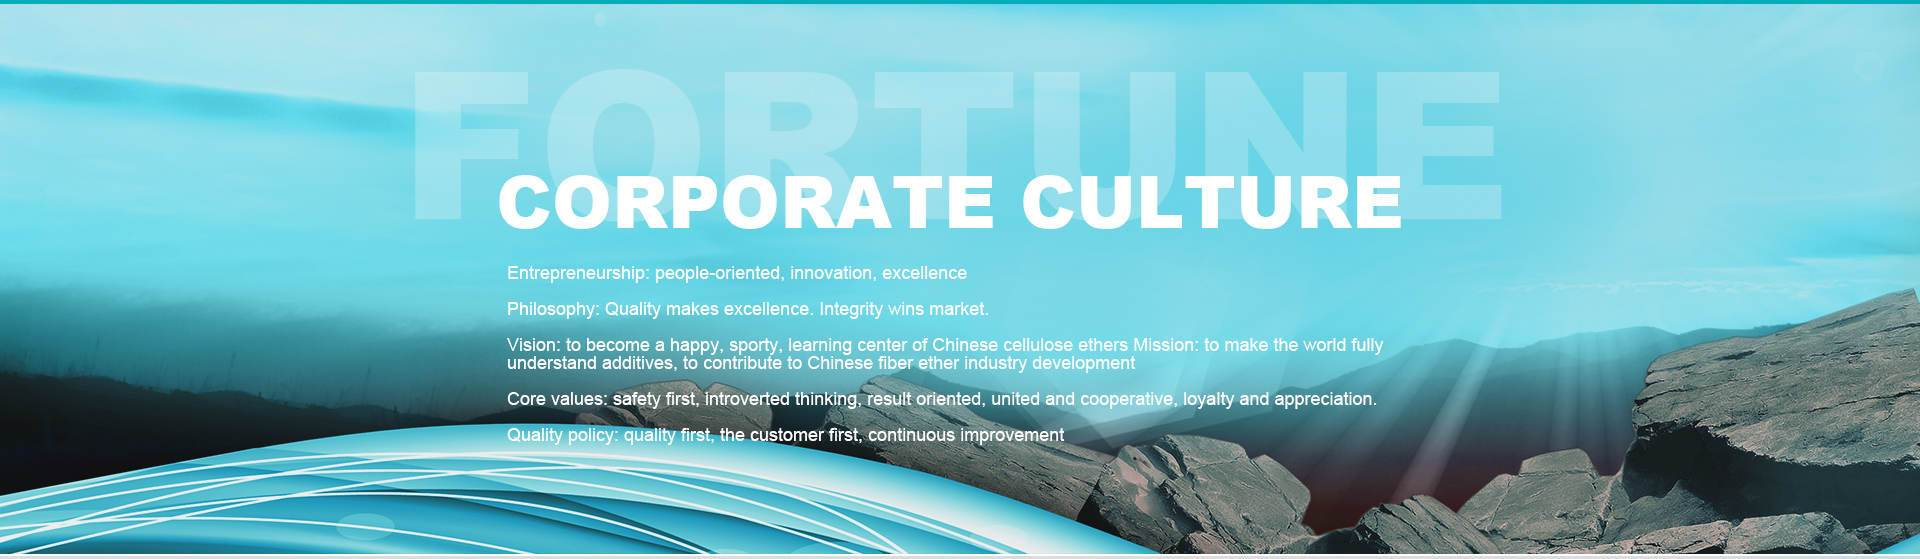 Fortune Biotech Corporate Culture